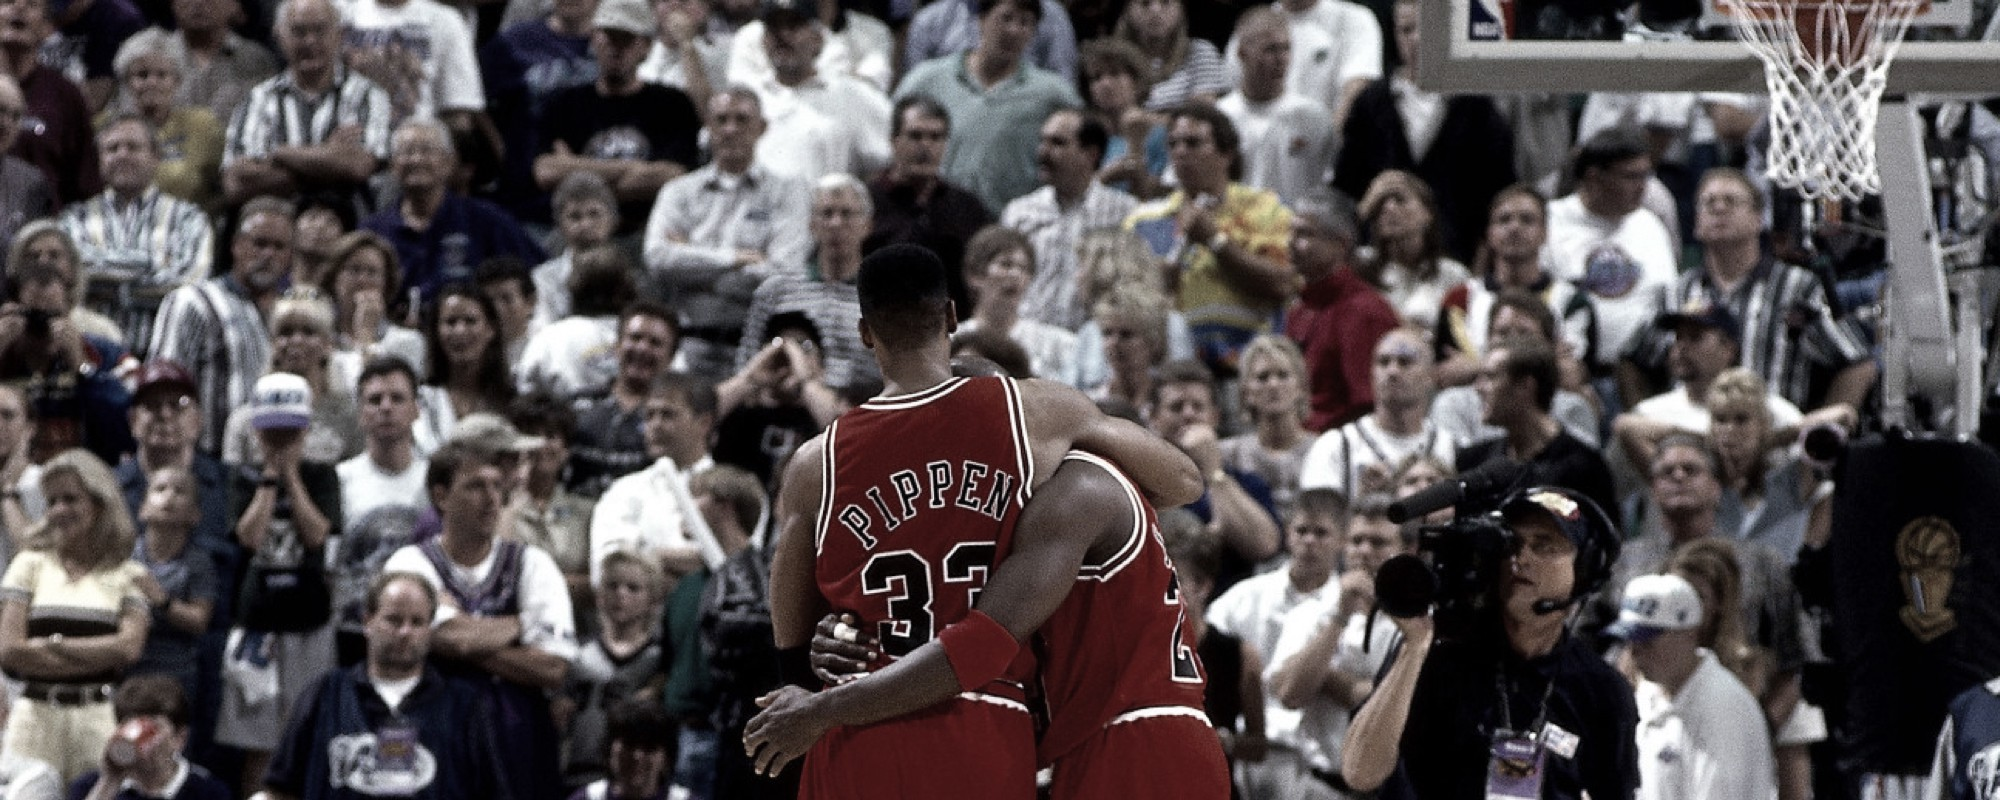 The wingman also leads the team when the hero is missing. We all have a flu game to struggle with